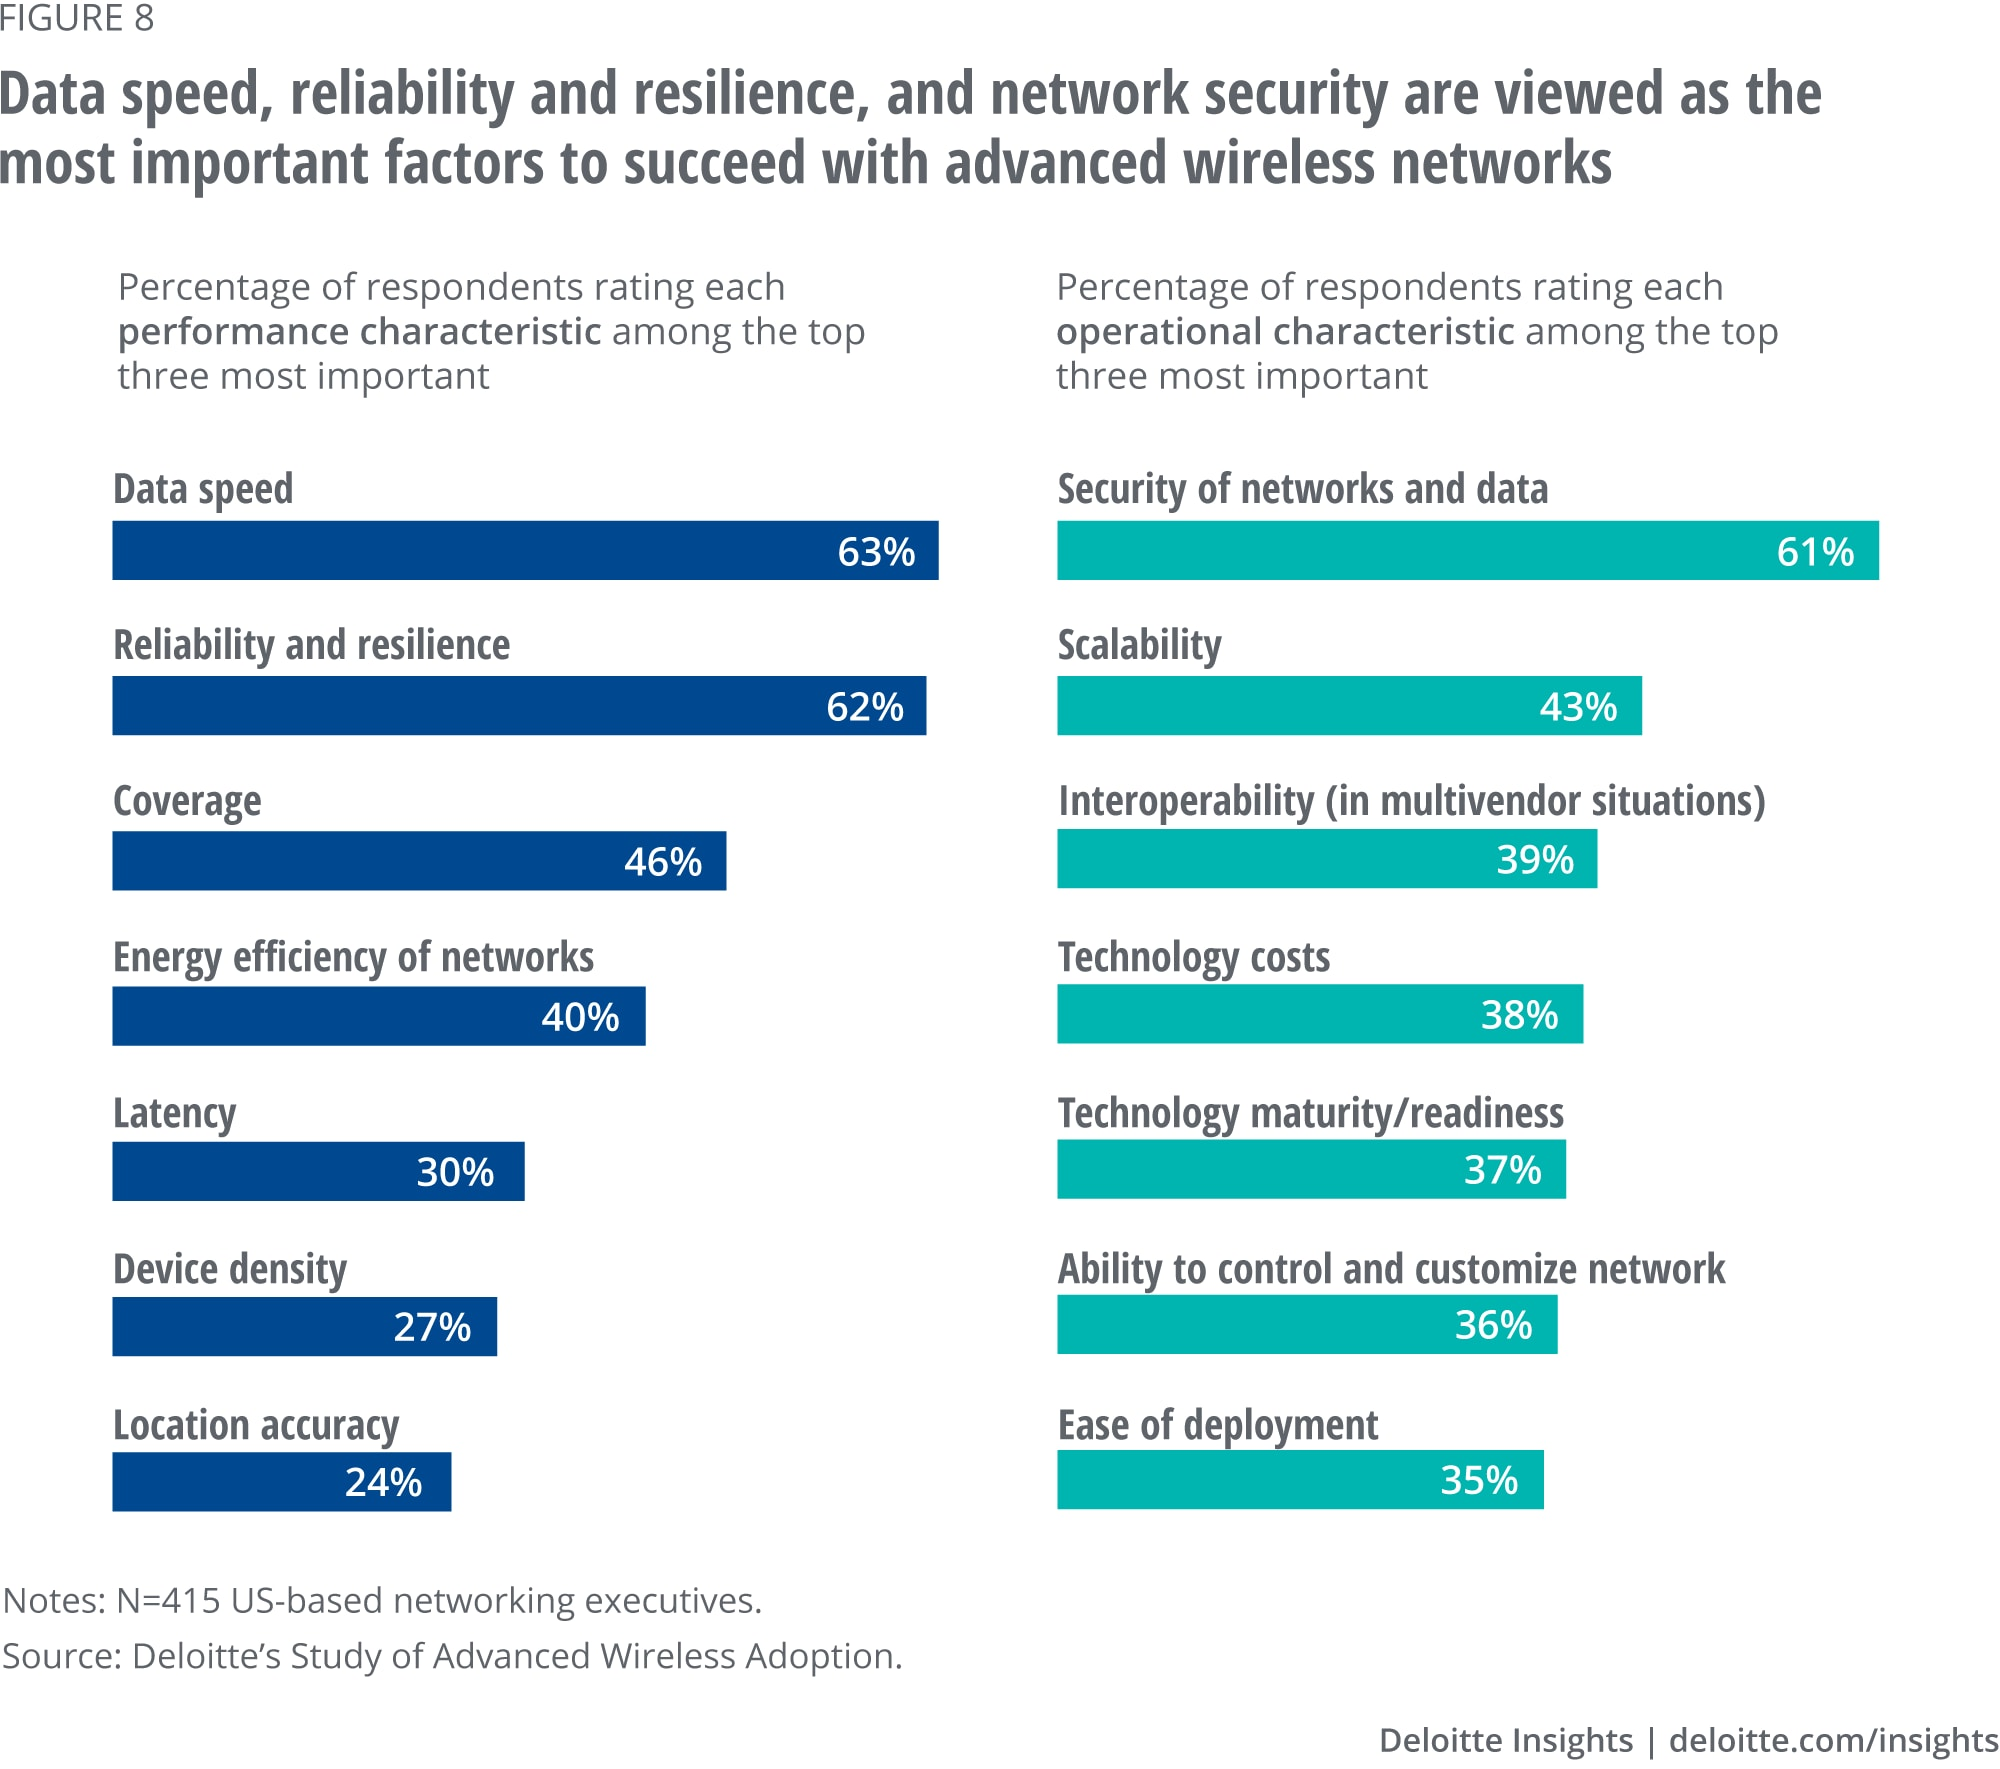 Data speed, reliability and resilience, and network security are viewed as the most important factors to succeed with advanced wireless